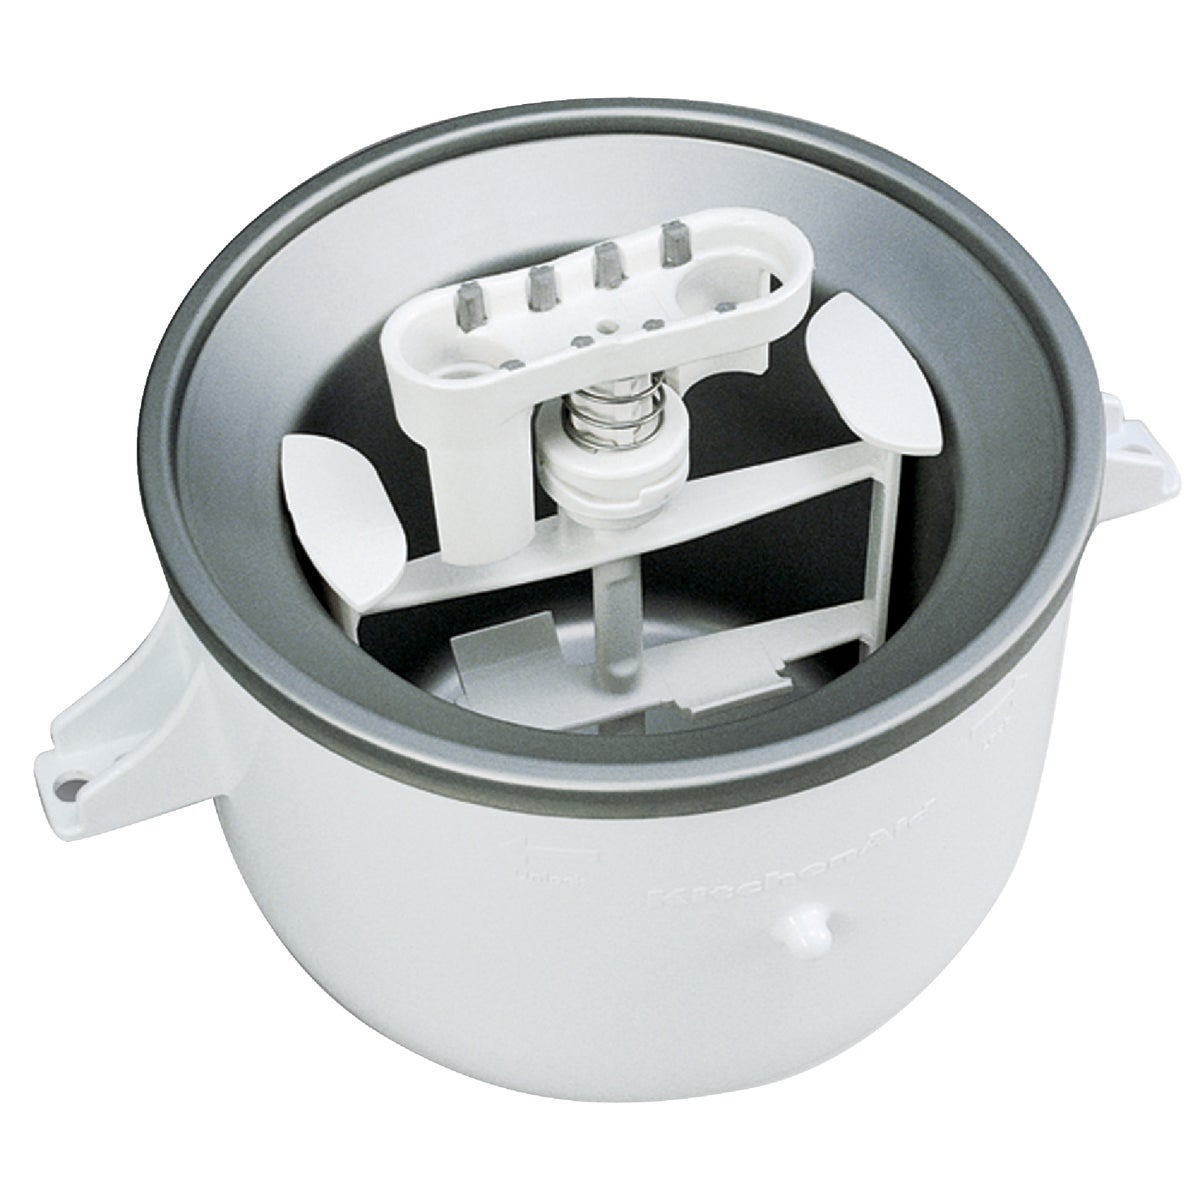 ICE CREAM MAKER ATTACH